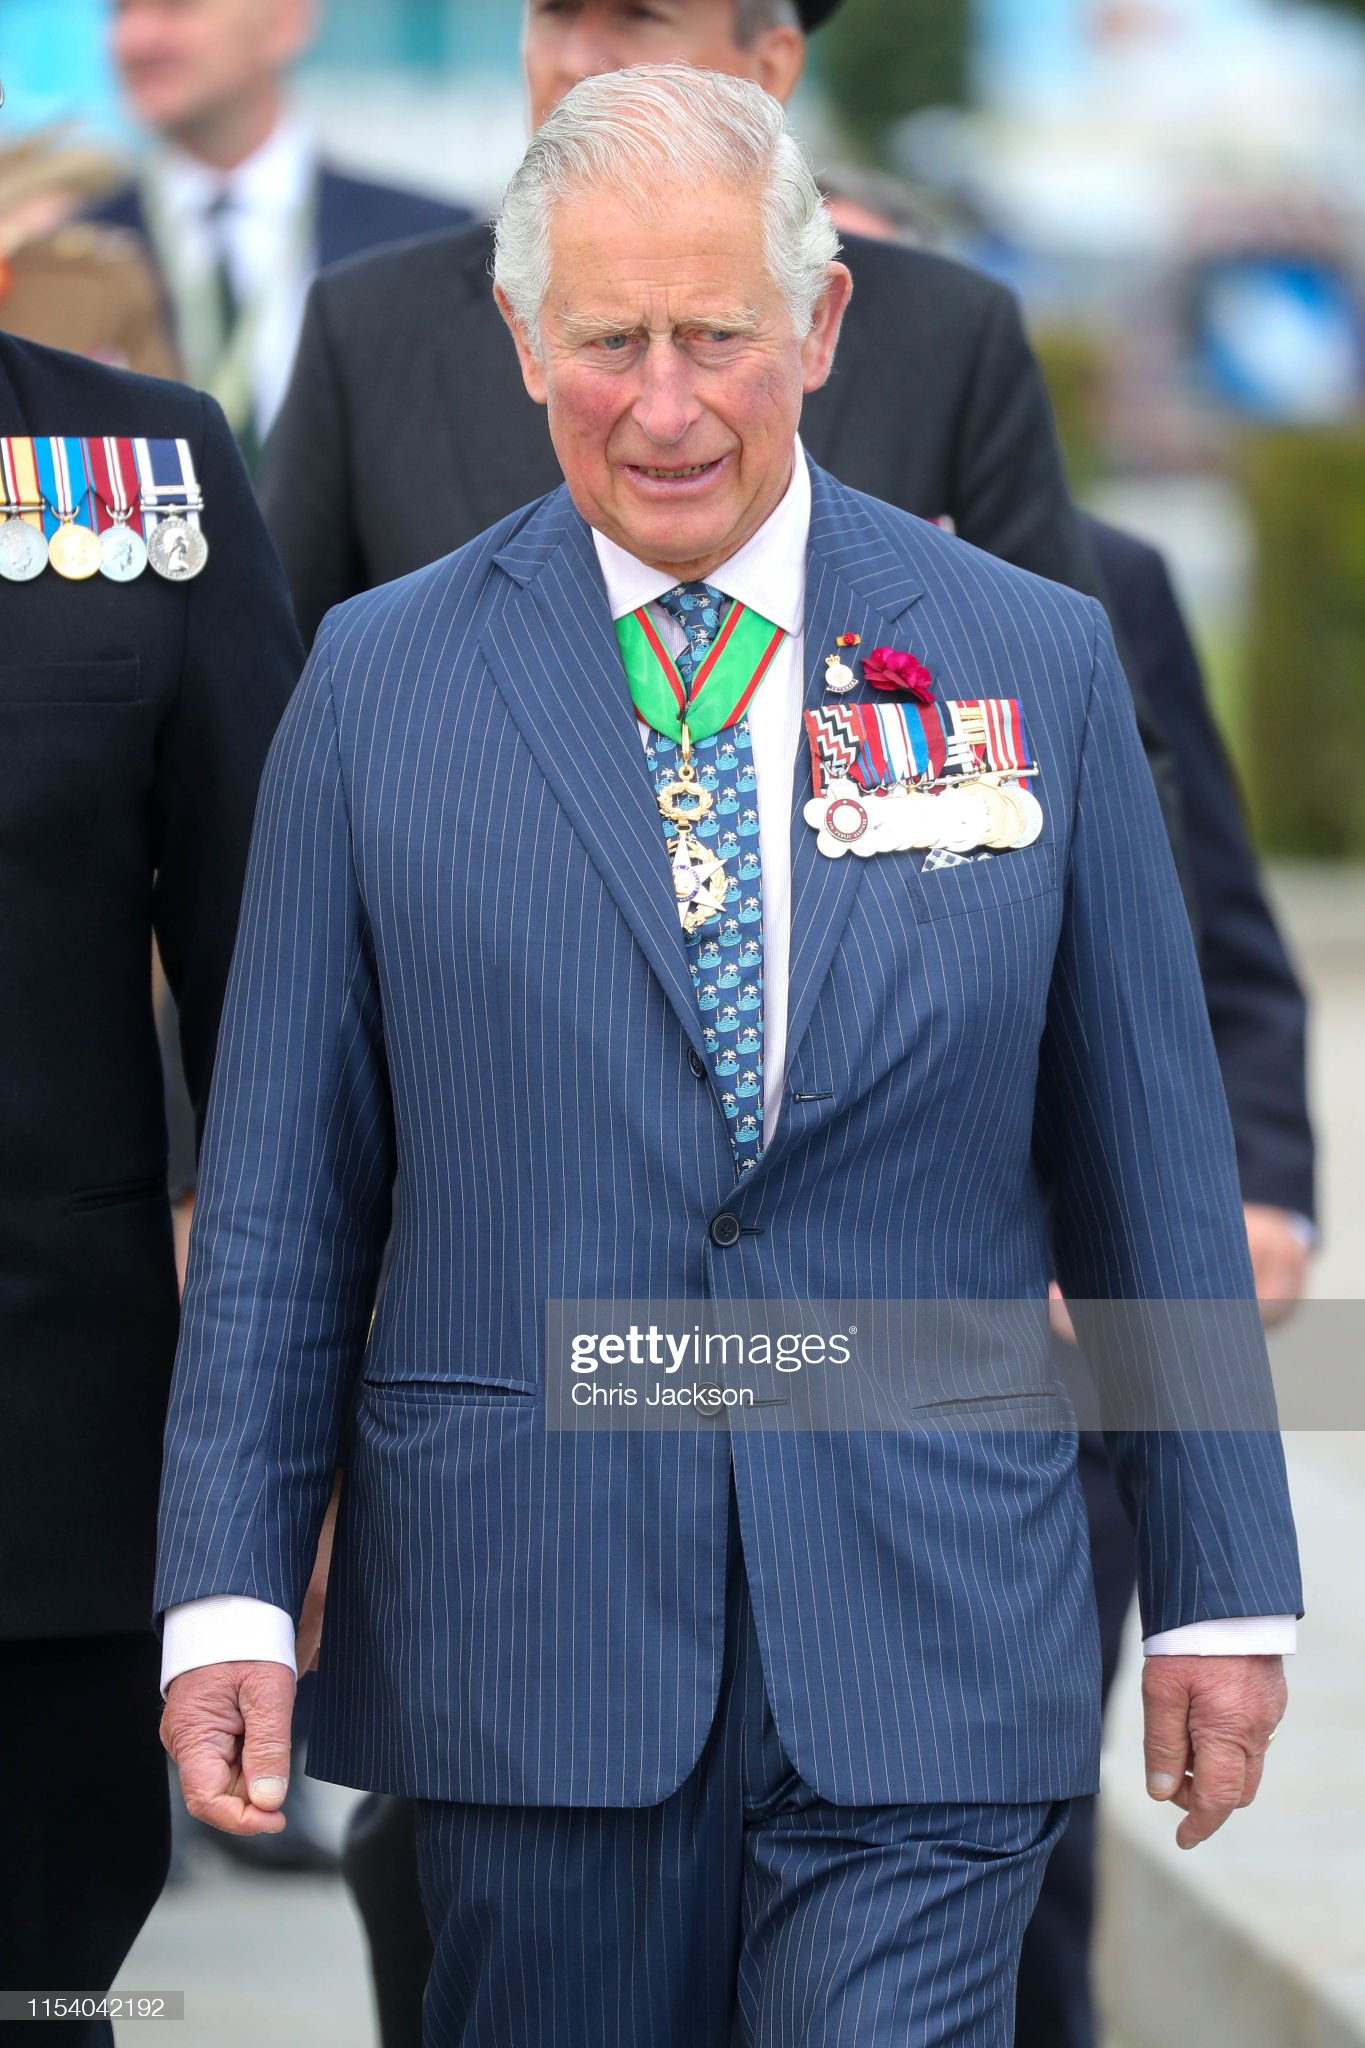 prince-charles-prince-of-wales-arrives-at-bayeux-war-cemetery-on-june-picture-id1154042192